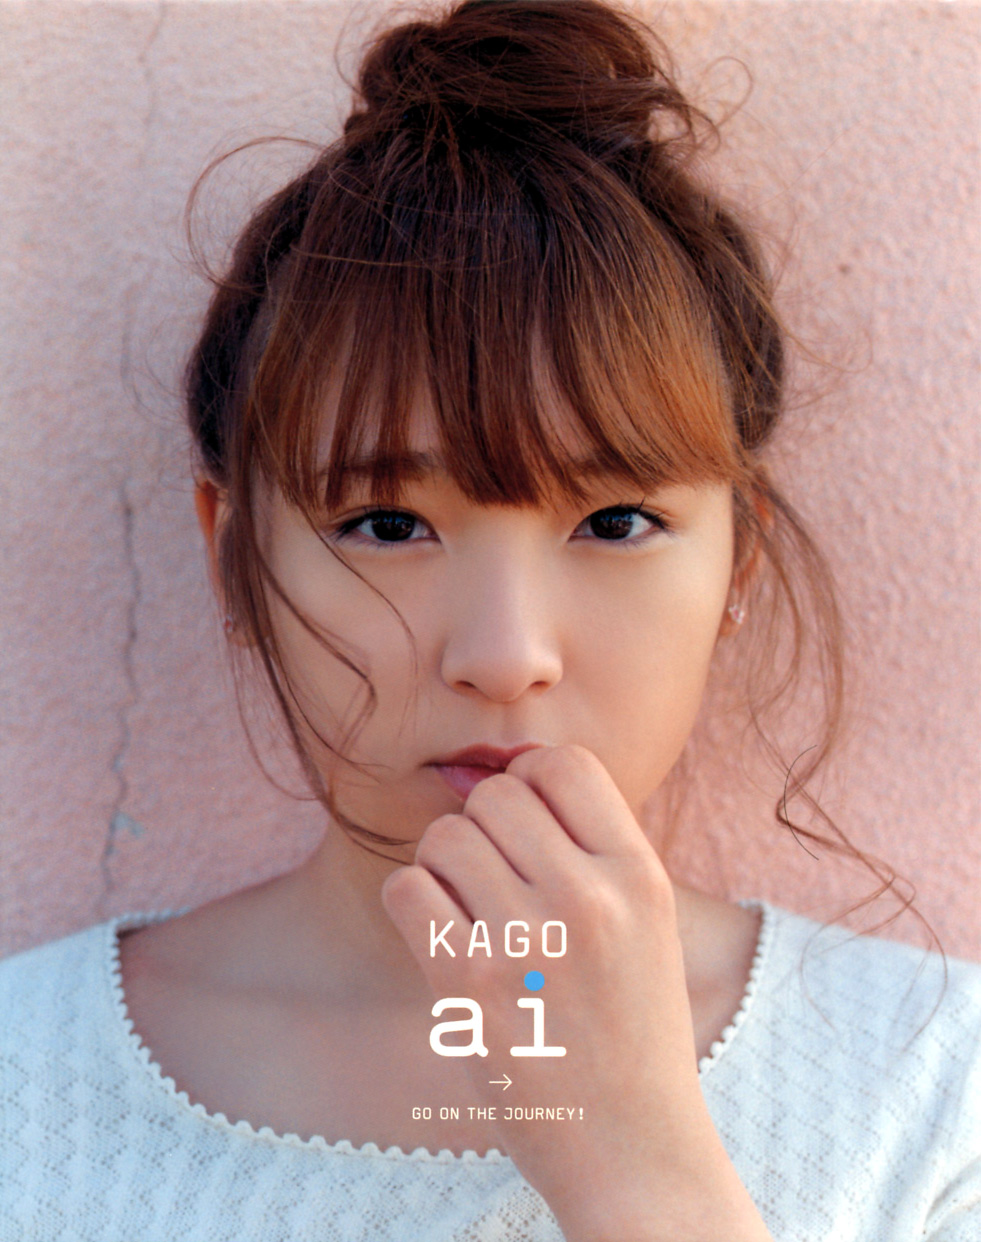 KAGO ai → GO ON THE JOURNEY!